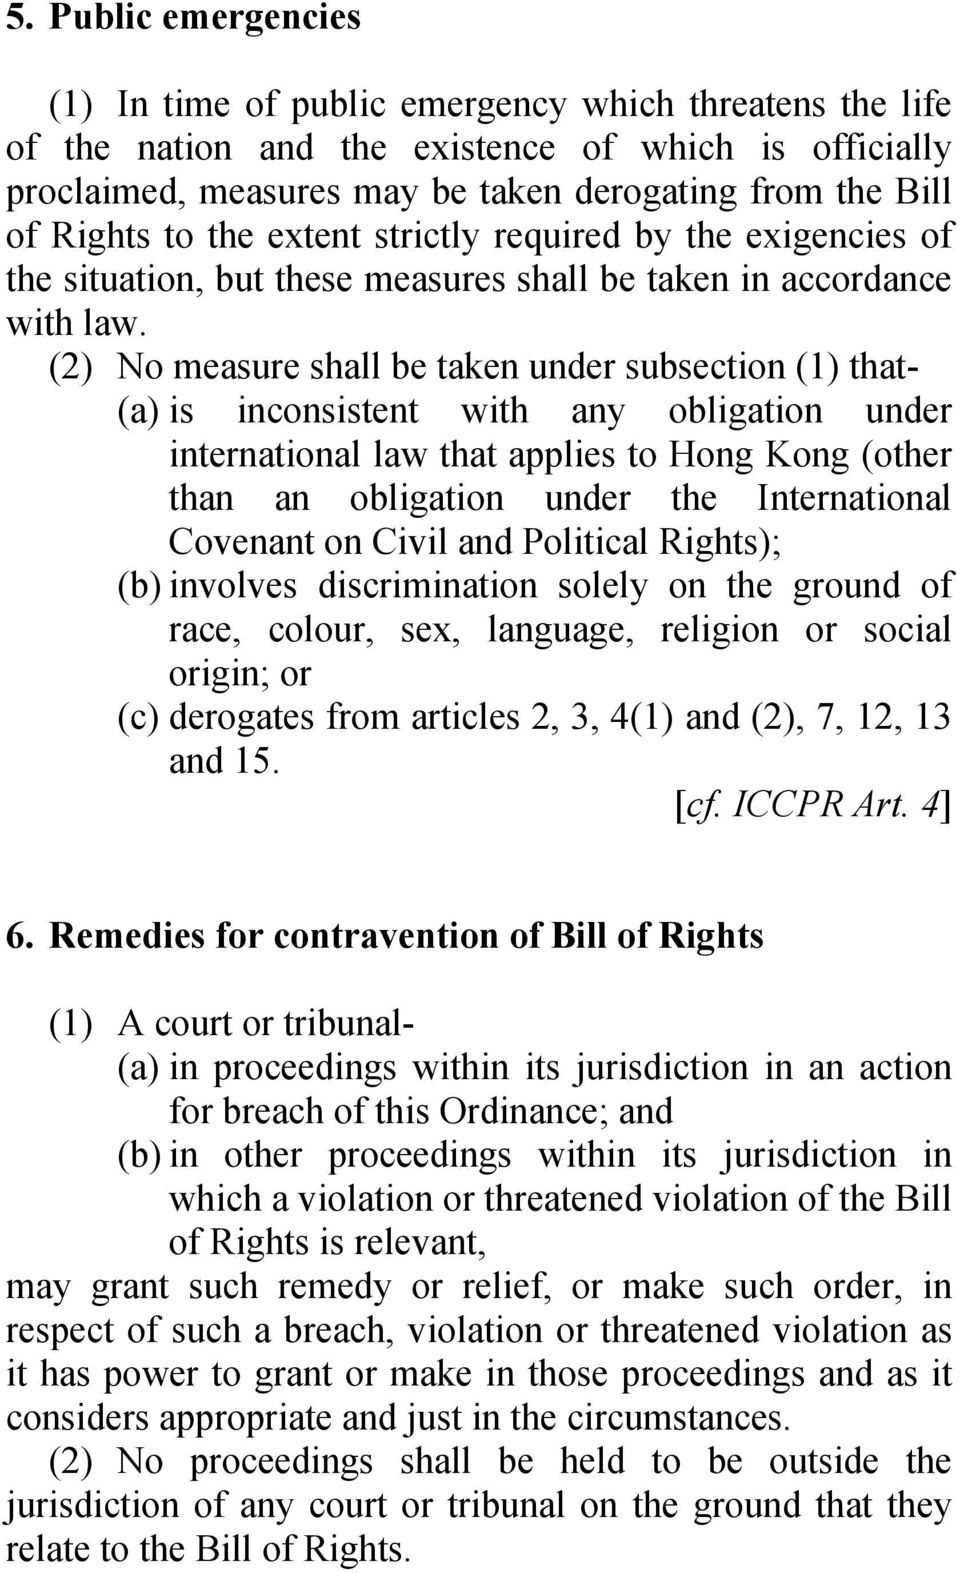 (2) No measure shall be taken under subsection (1) that- (a) is inconsistent with any obligation under international law that applies to Hong Kong (other than an obligation under the International